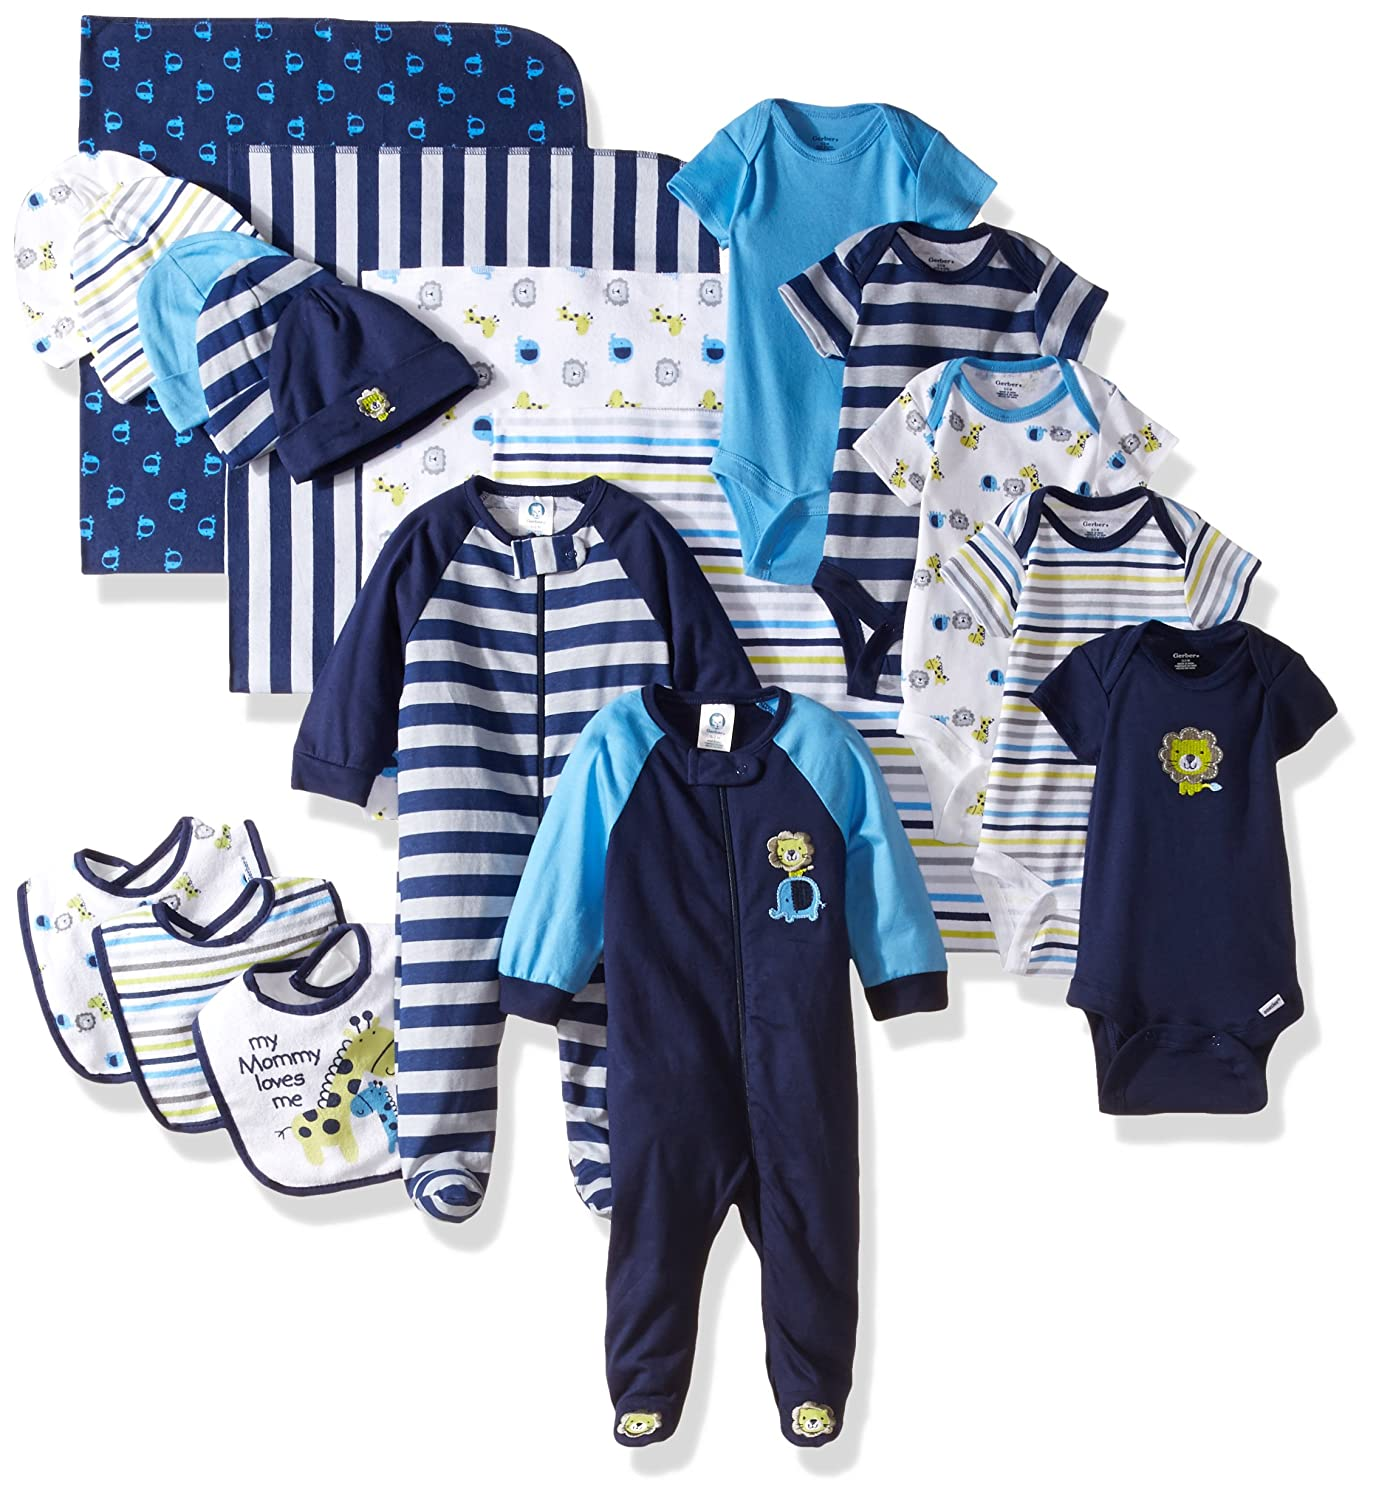 Gerber Baby Boys' 19 Piece Essentials Gift Set Safari Newborn Gerber Children' s Apparel 95792016AB17AST